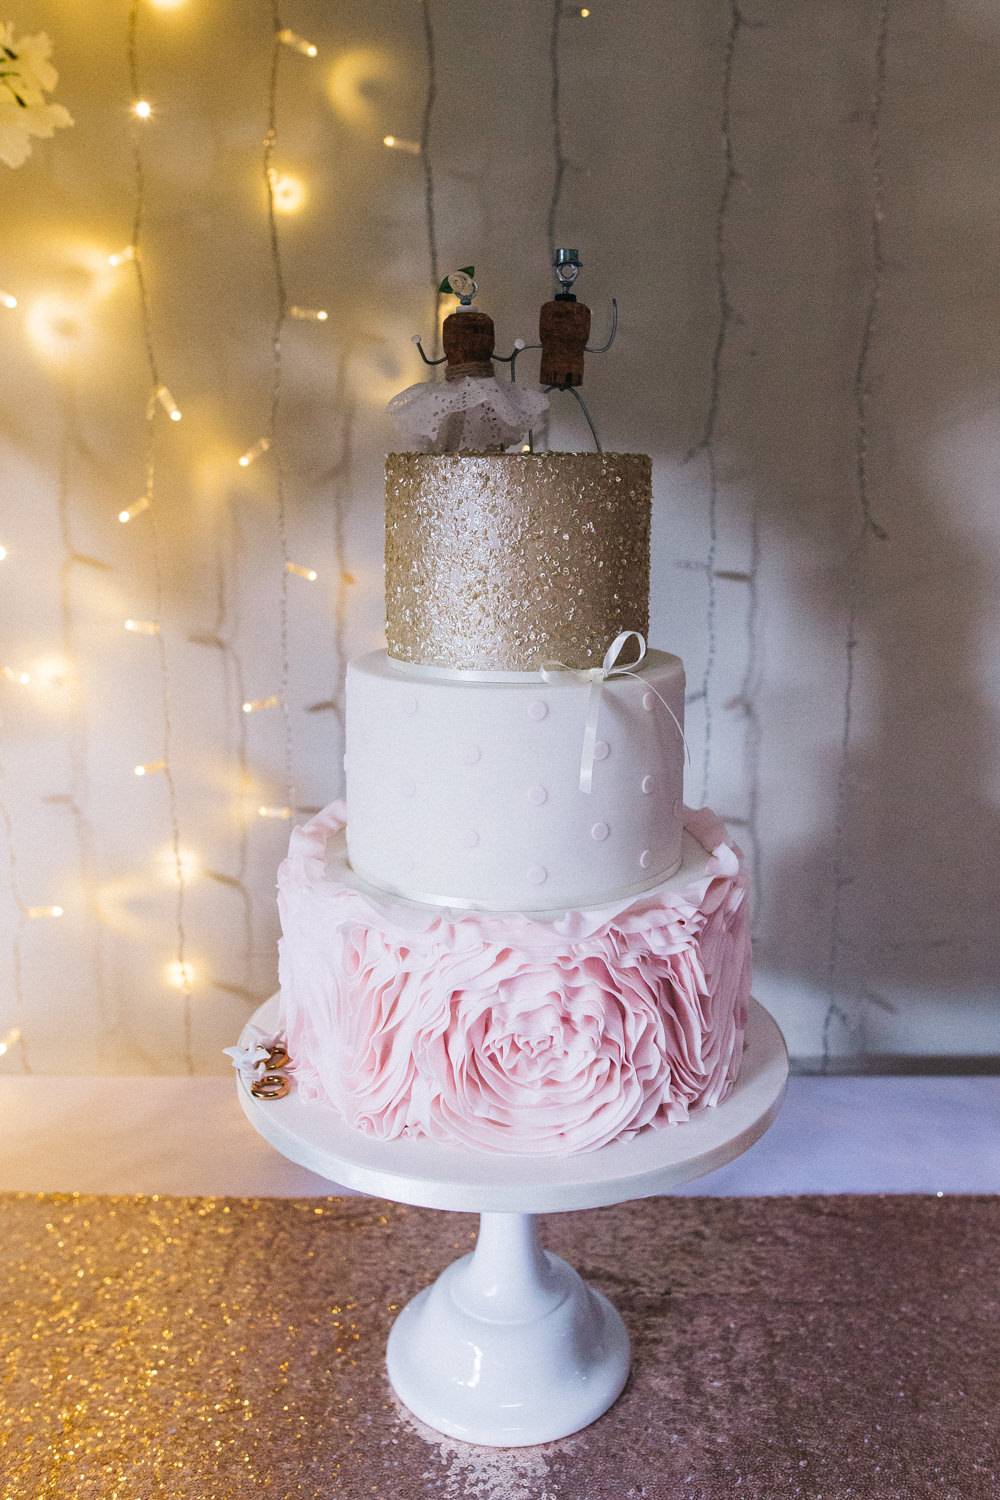 Cake Pea Light Curtain Sequin Polka Dot Ruffle Champagne Cork Topper Whinstone View Wedding Sally T Photography